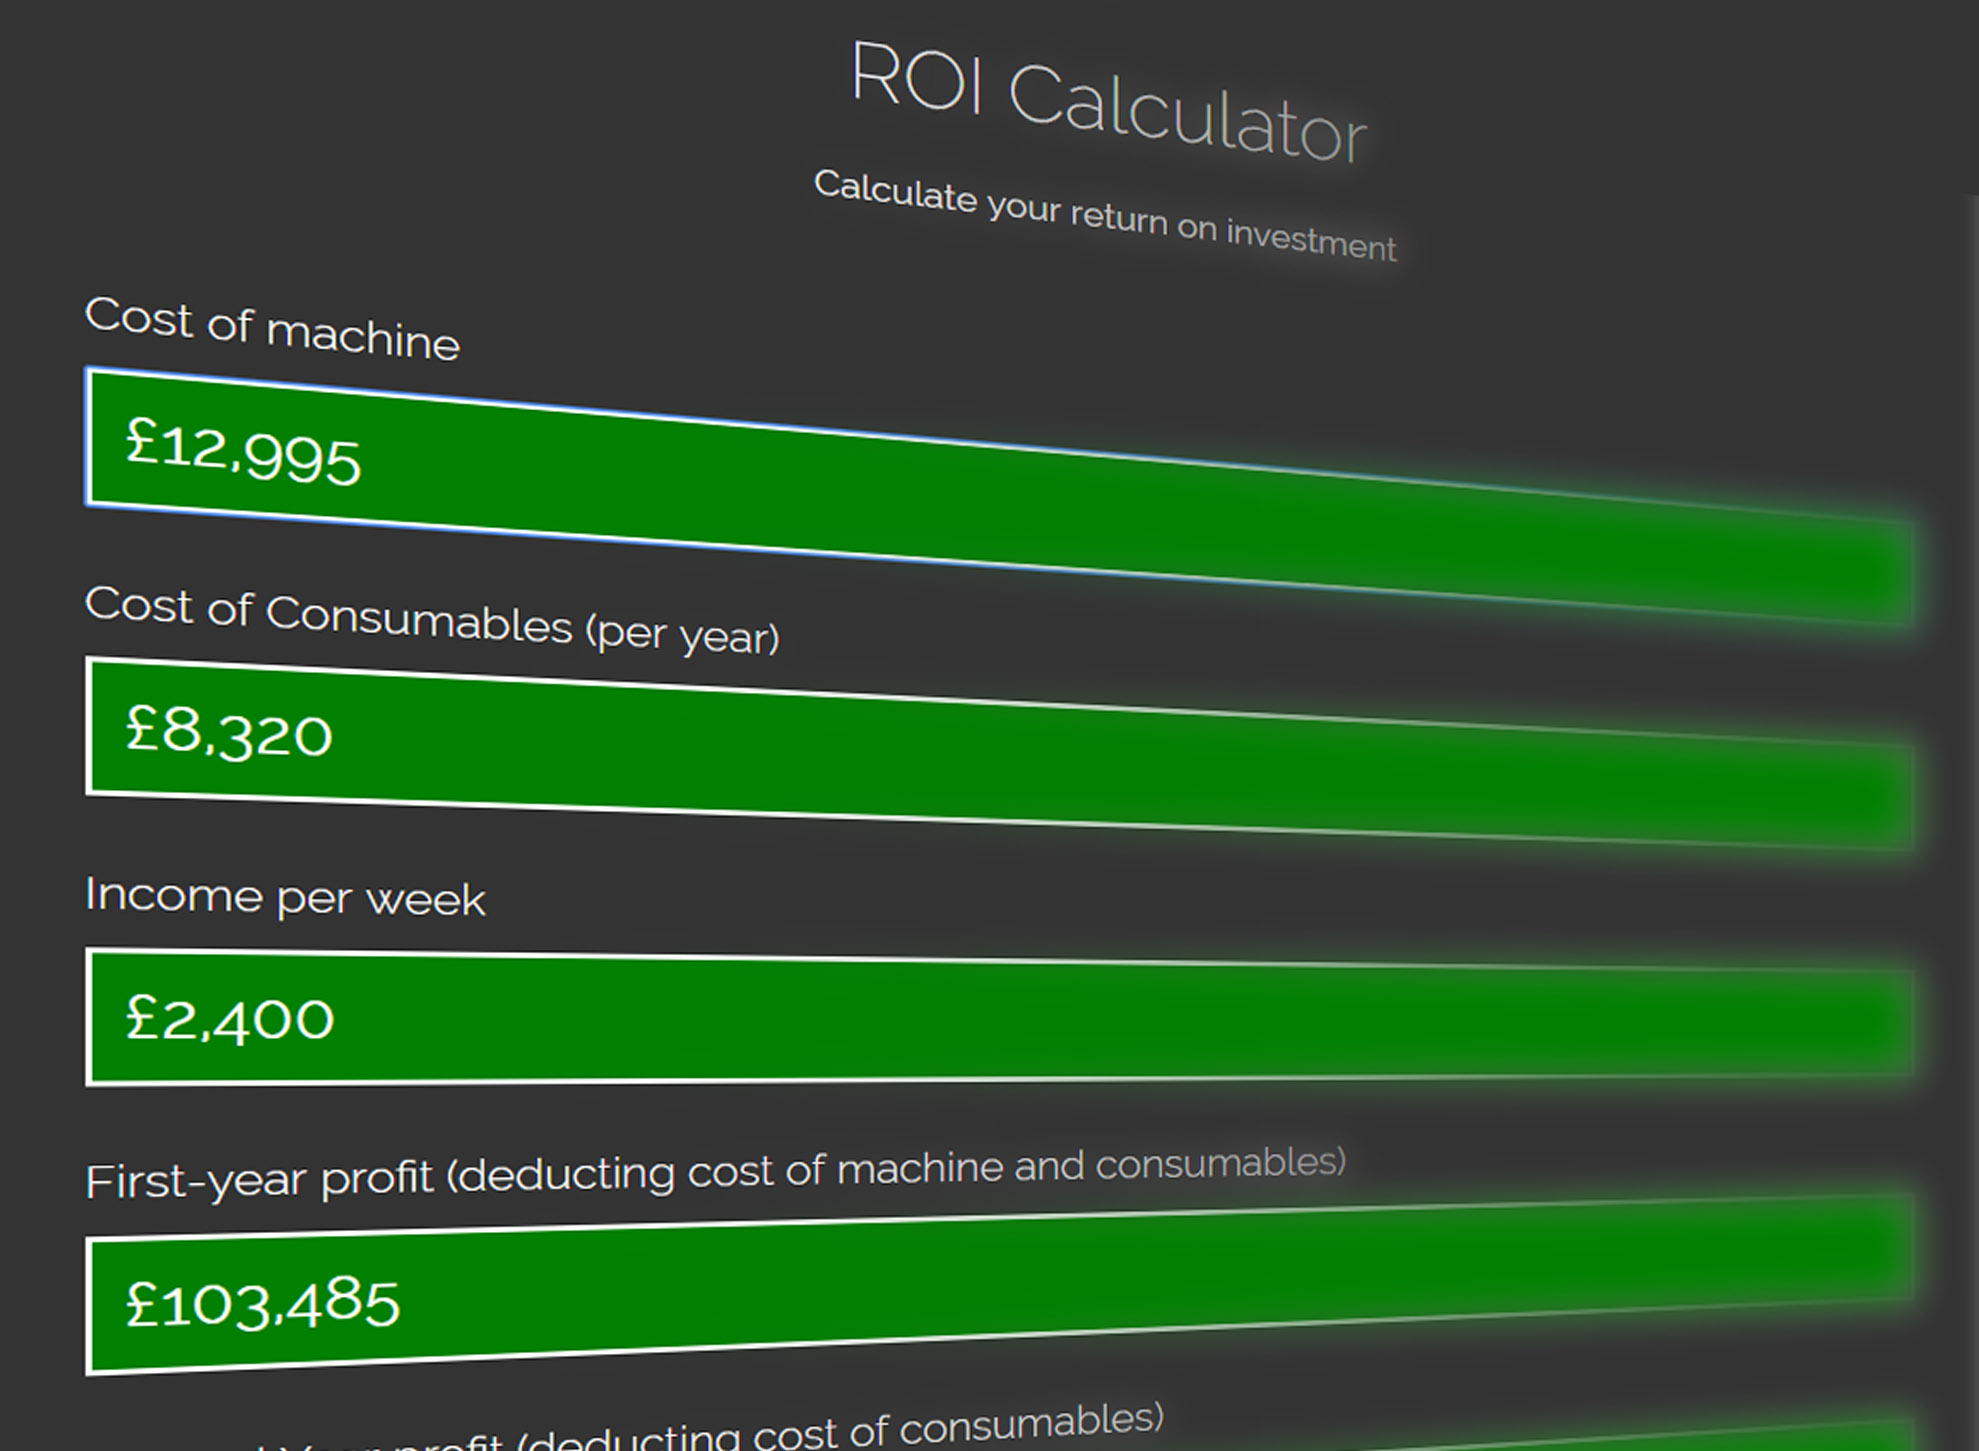 ROI Calculator Featured